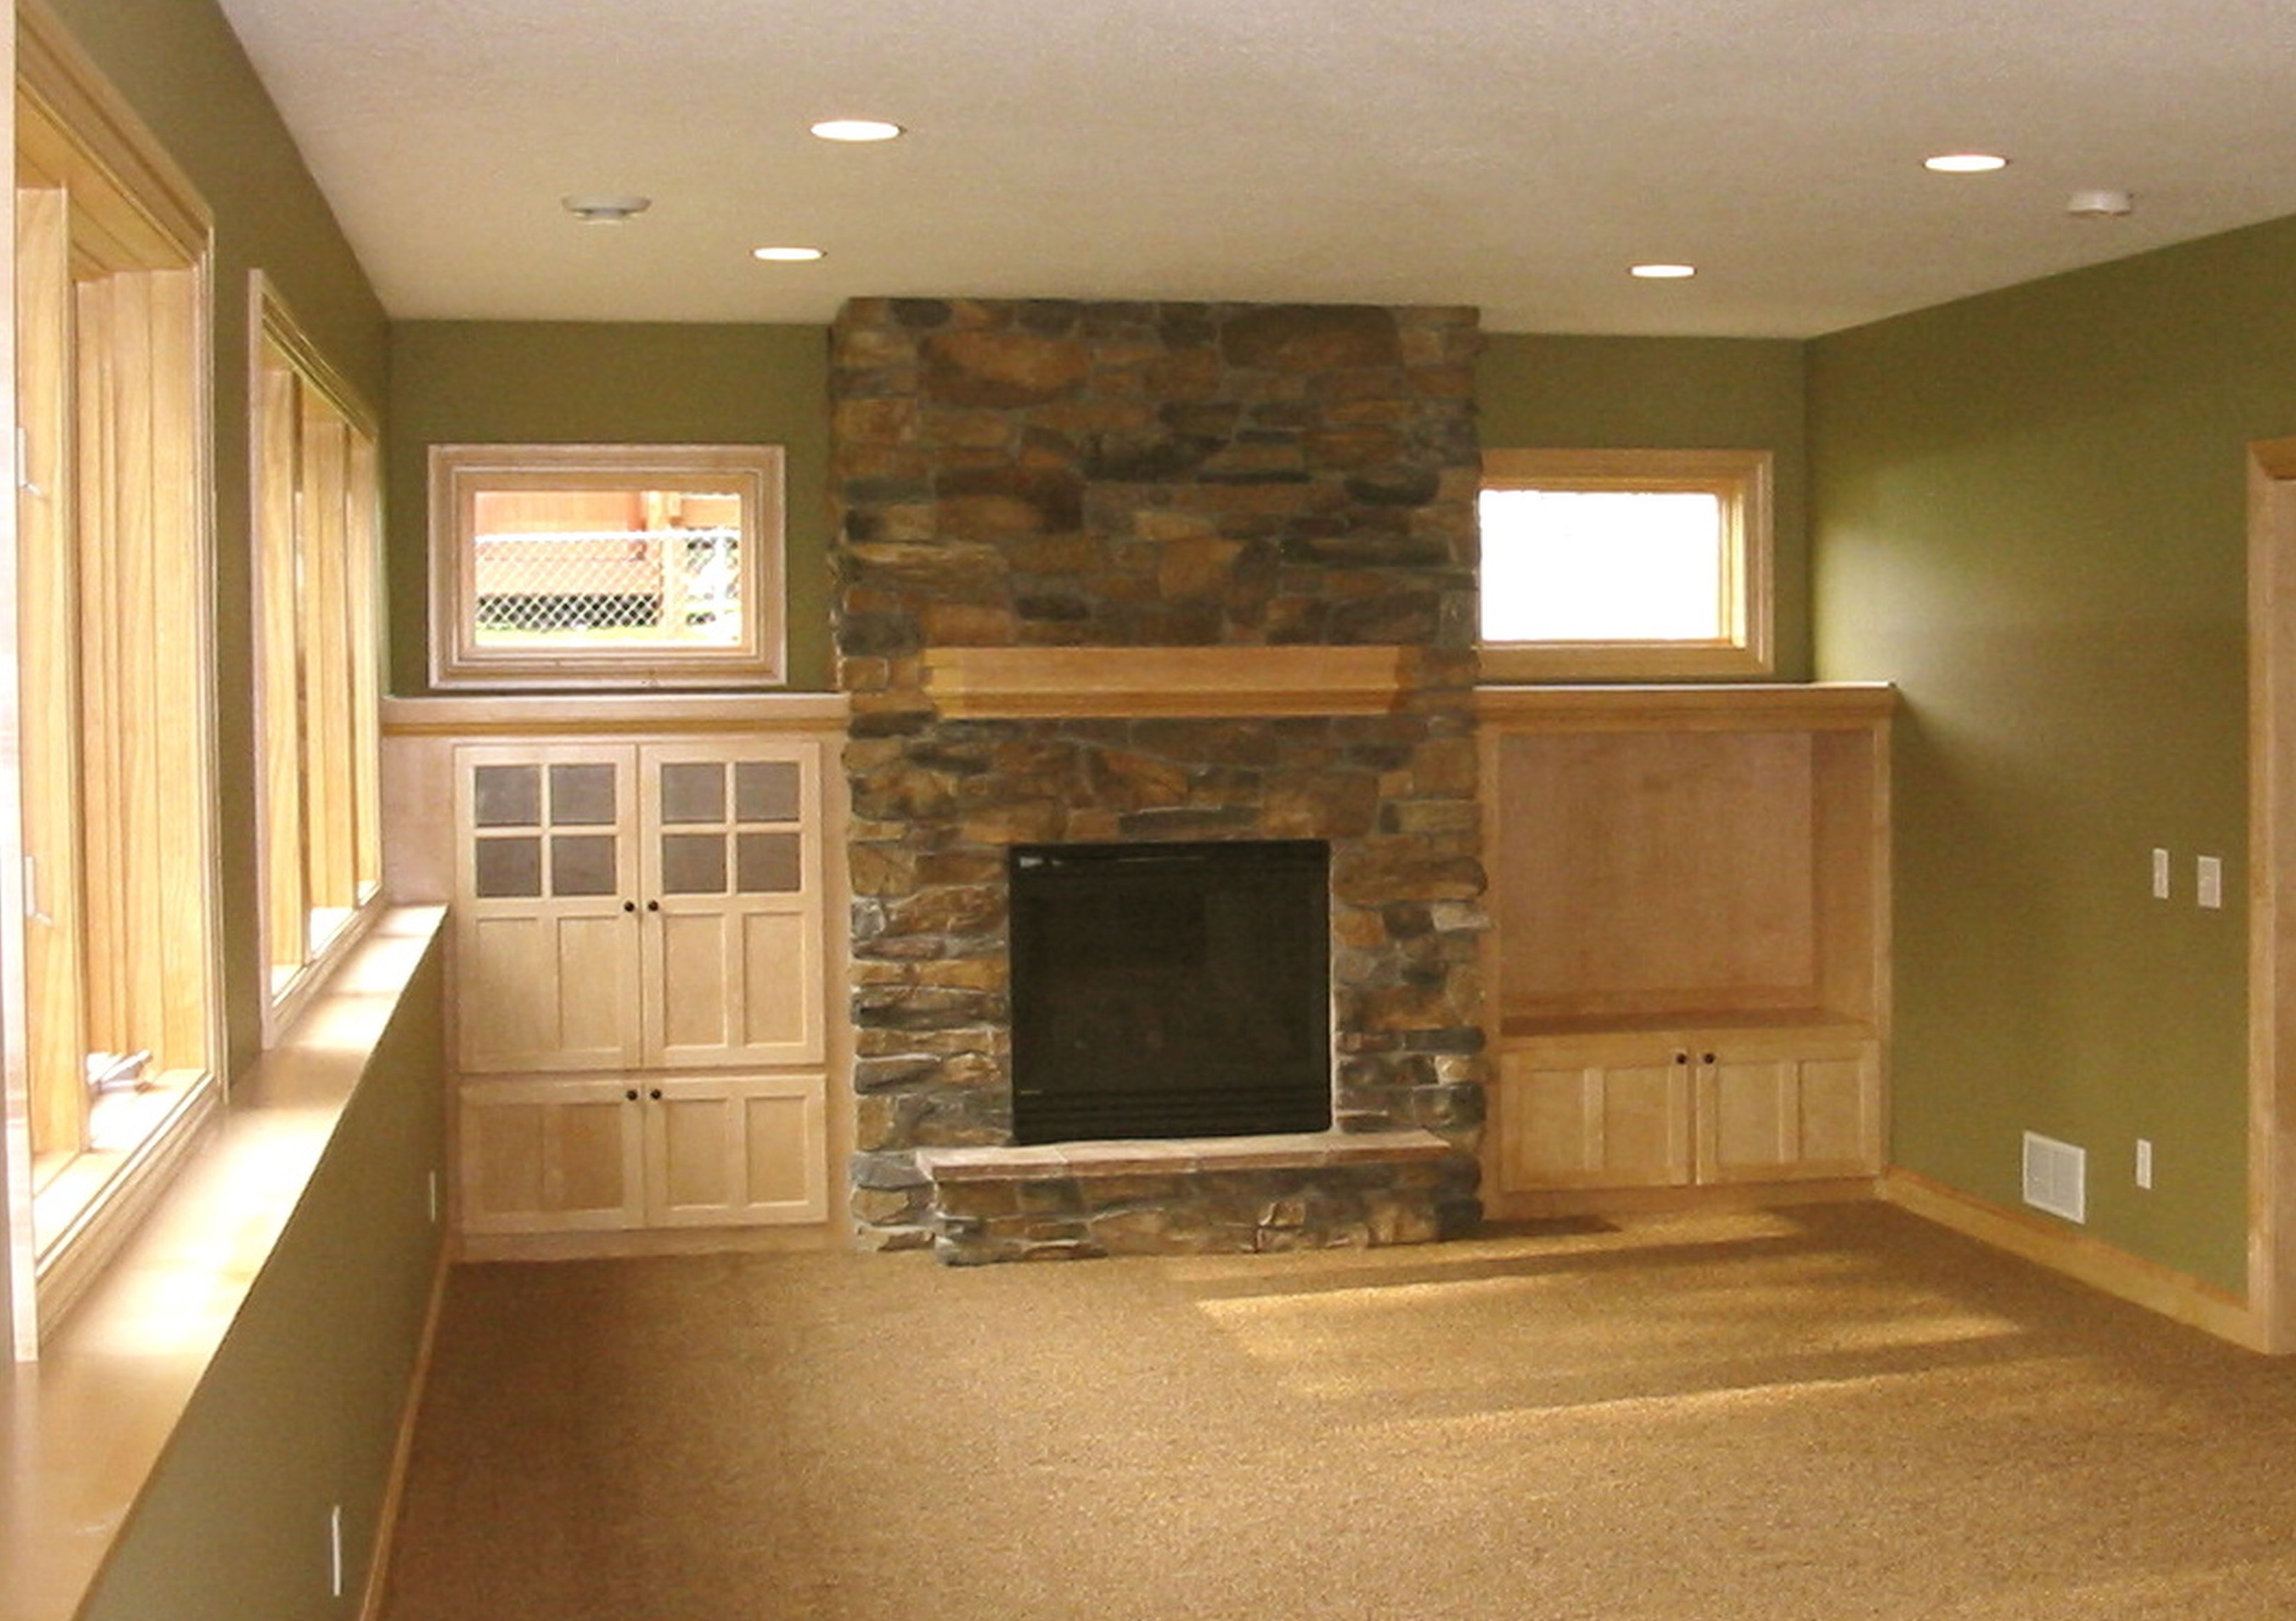 Best ideas about Remodel Basement Ideas . Save or Pin Beautiful Ways To Remodeling Basements Interior Vogue Now.